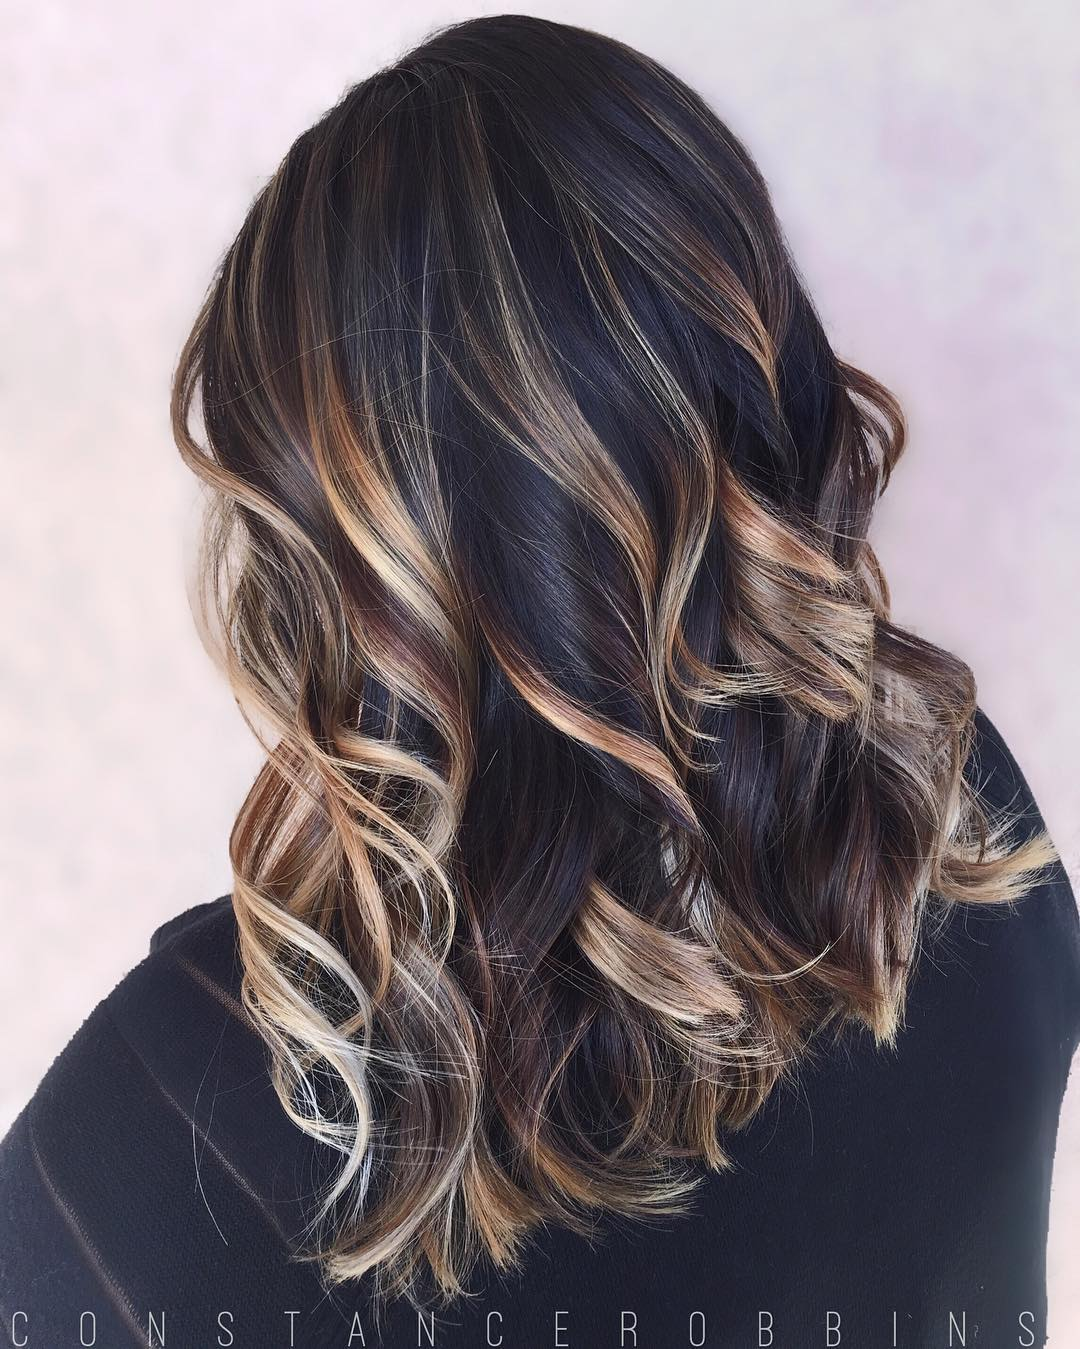 Black Hair with Blonde and Caramel Highlights